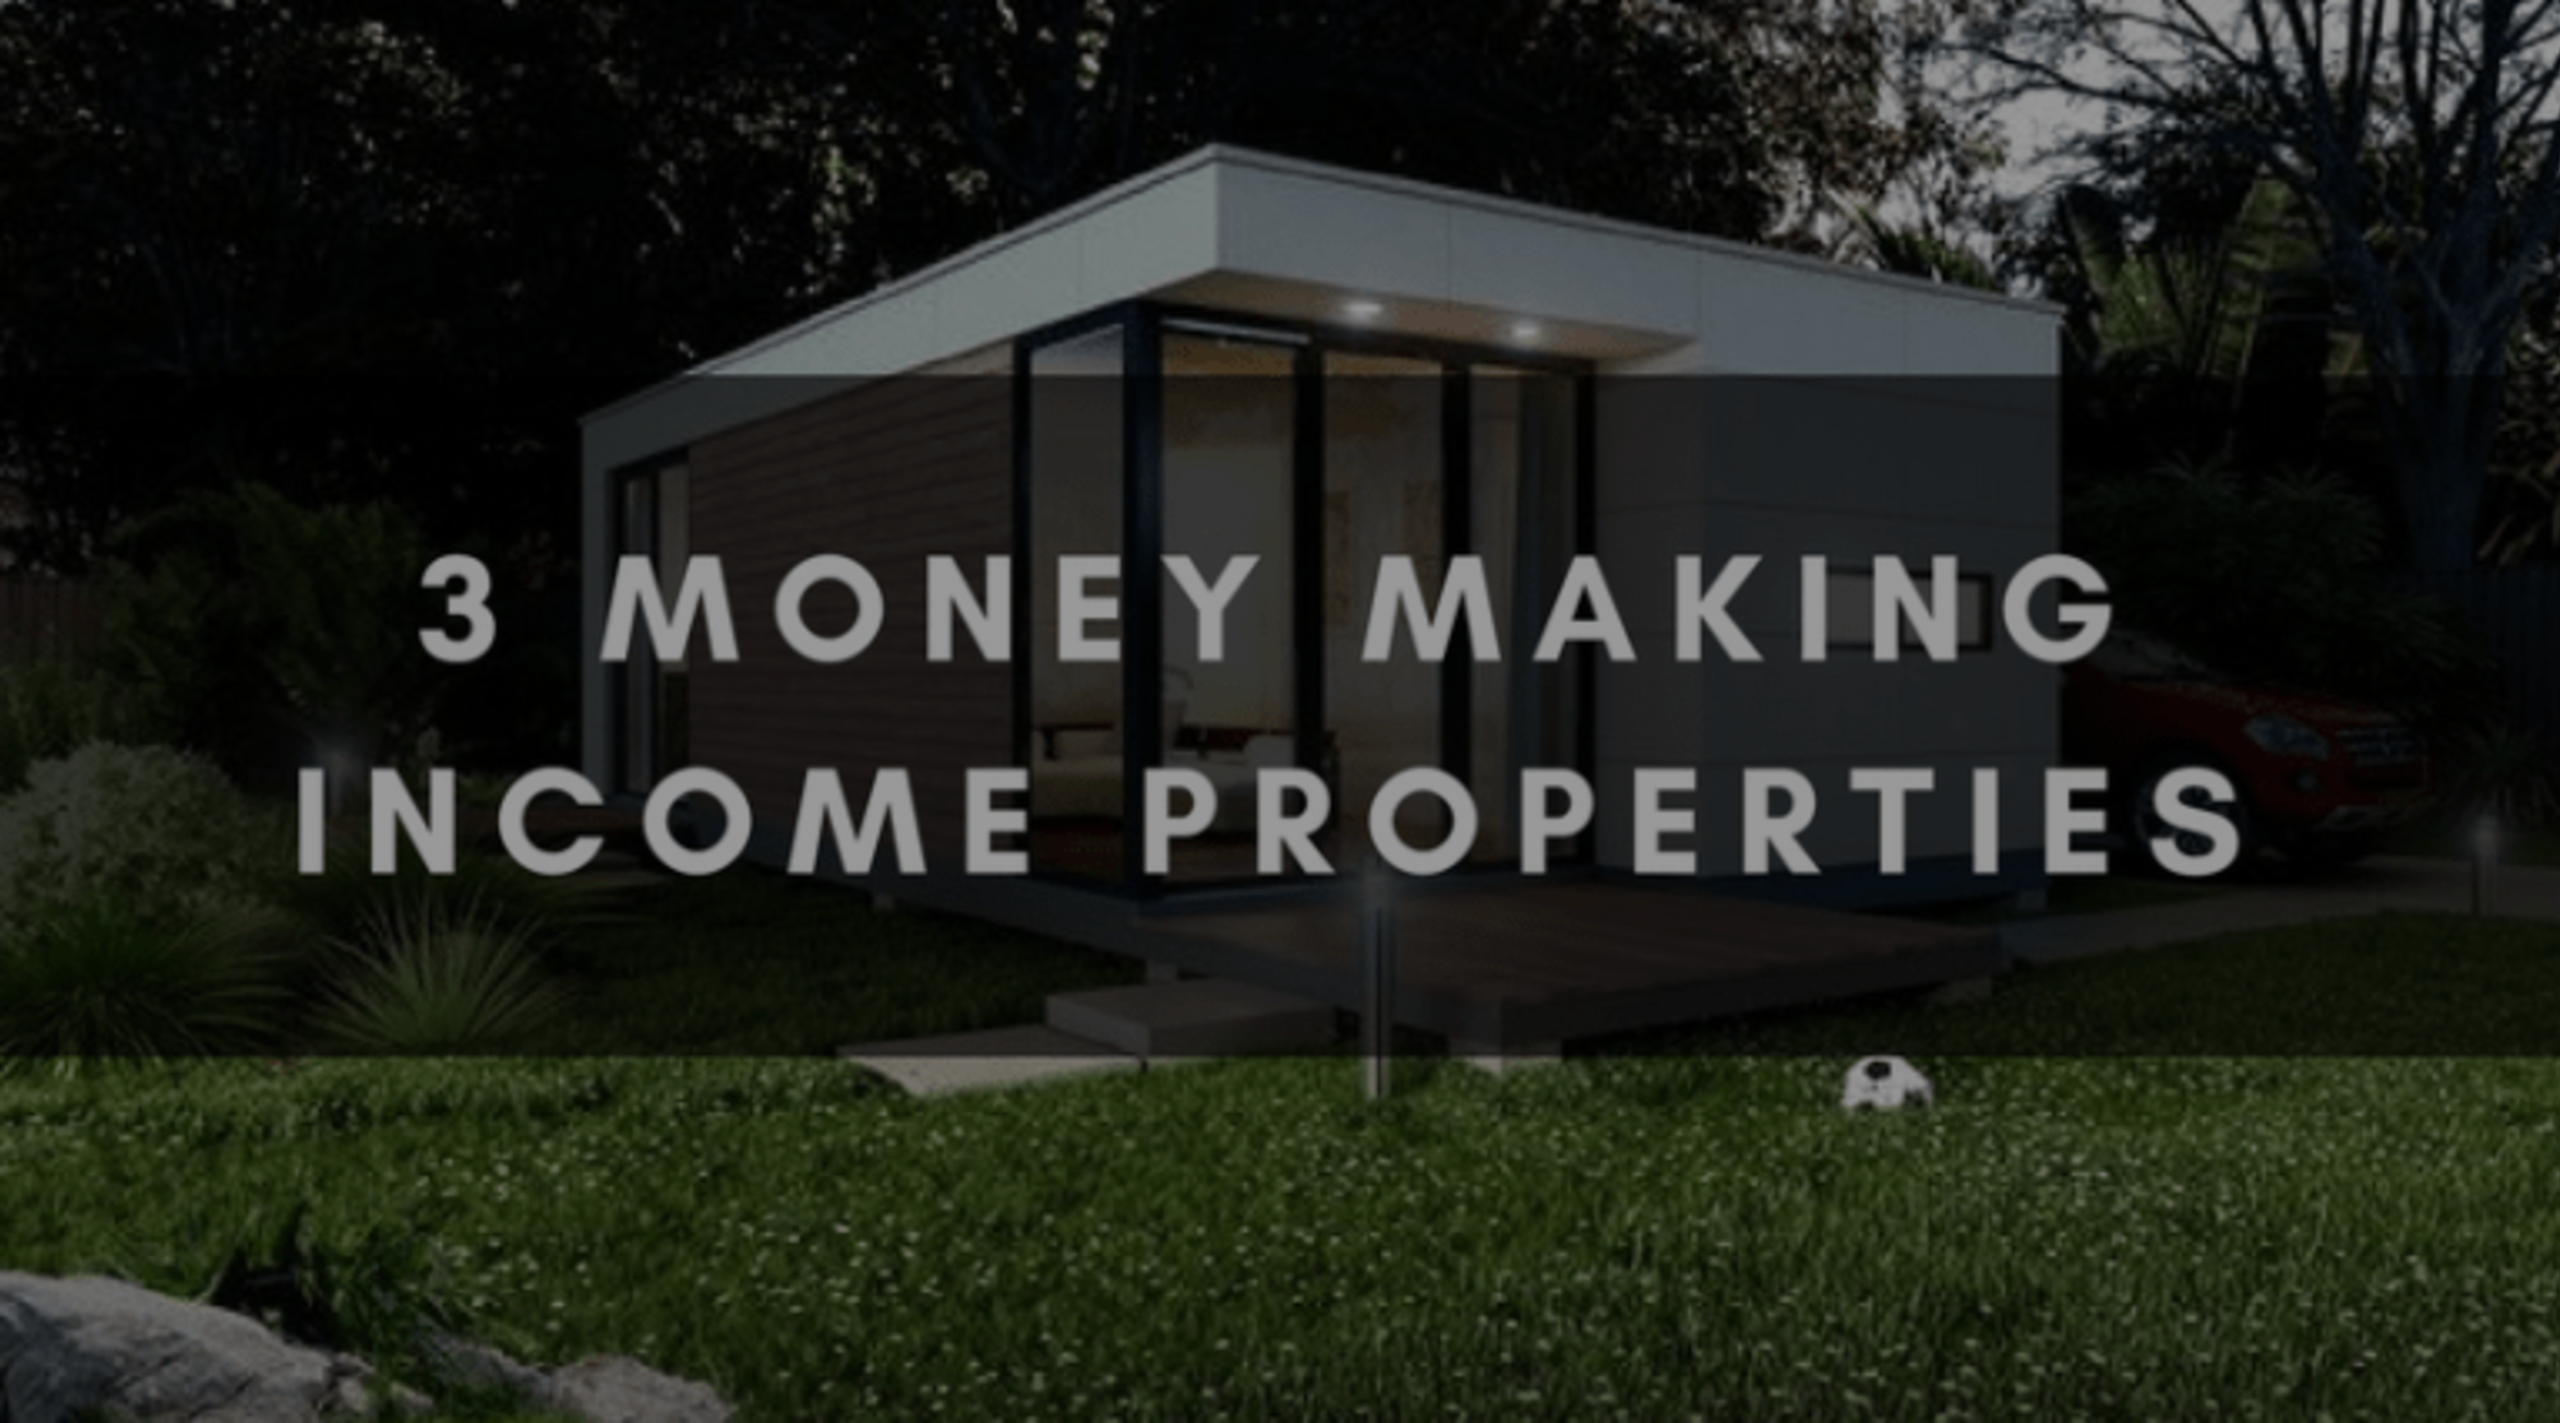 3 MONEY MAKING INCOME PROPERTIES